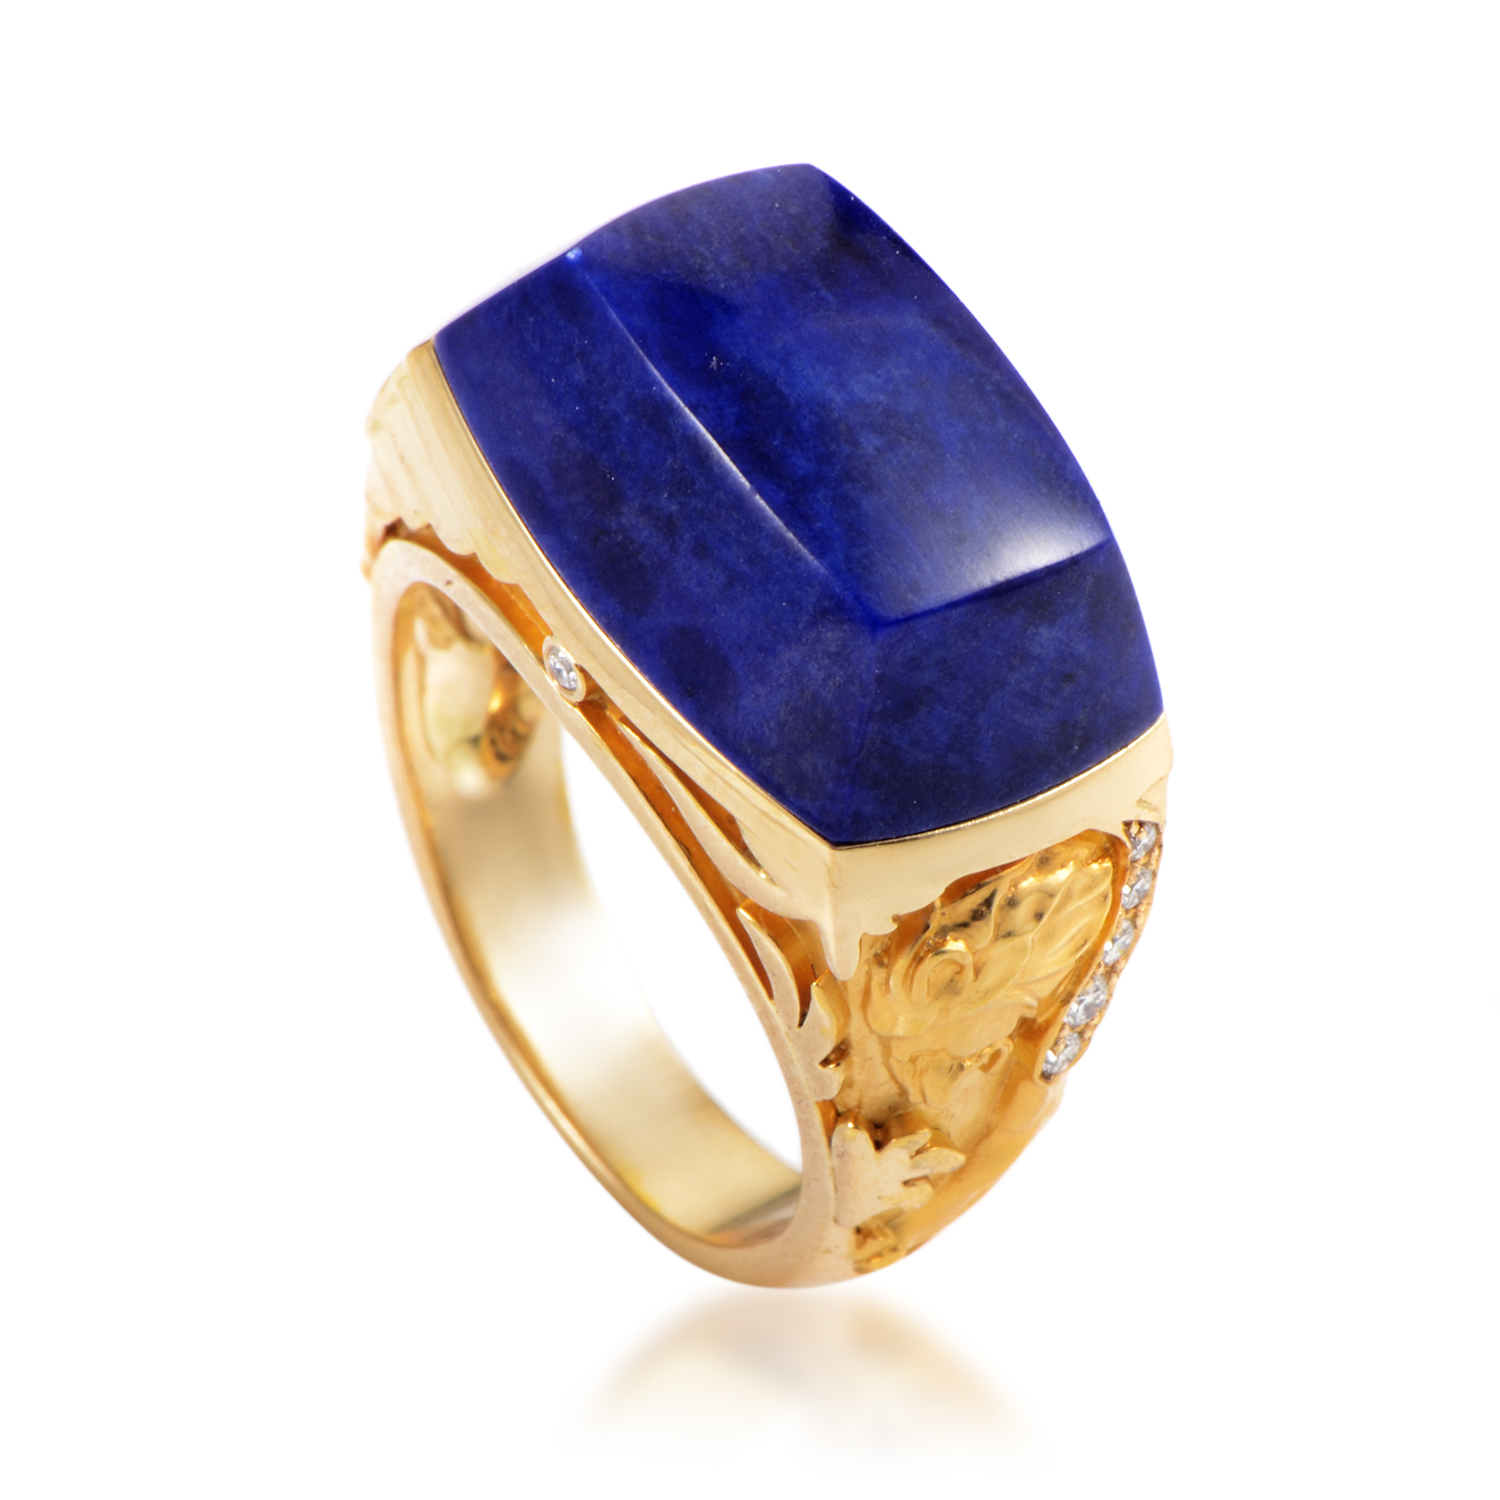 Babylon Women's 18K Yellow Gold Diamond & Lapis Lazuli Cocktail Ring